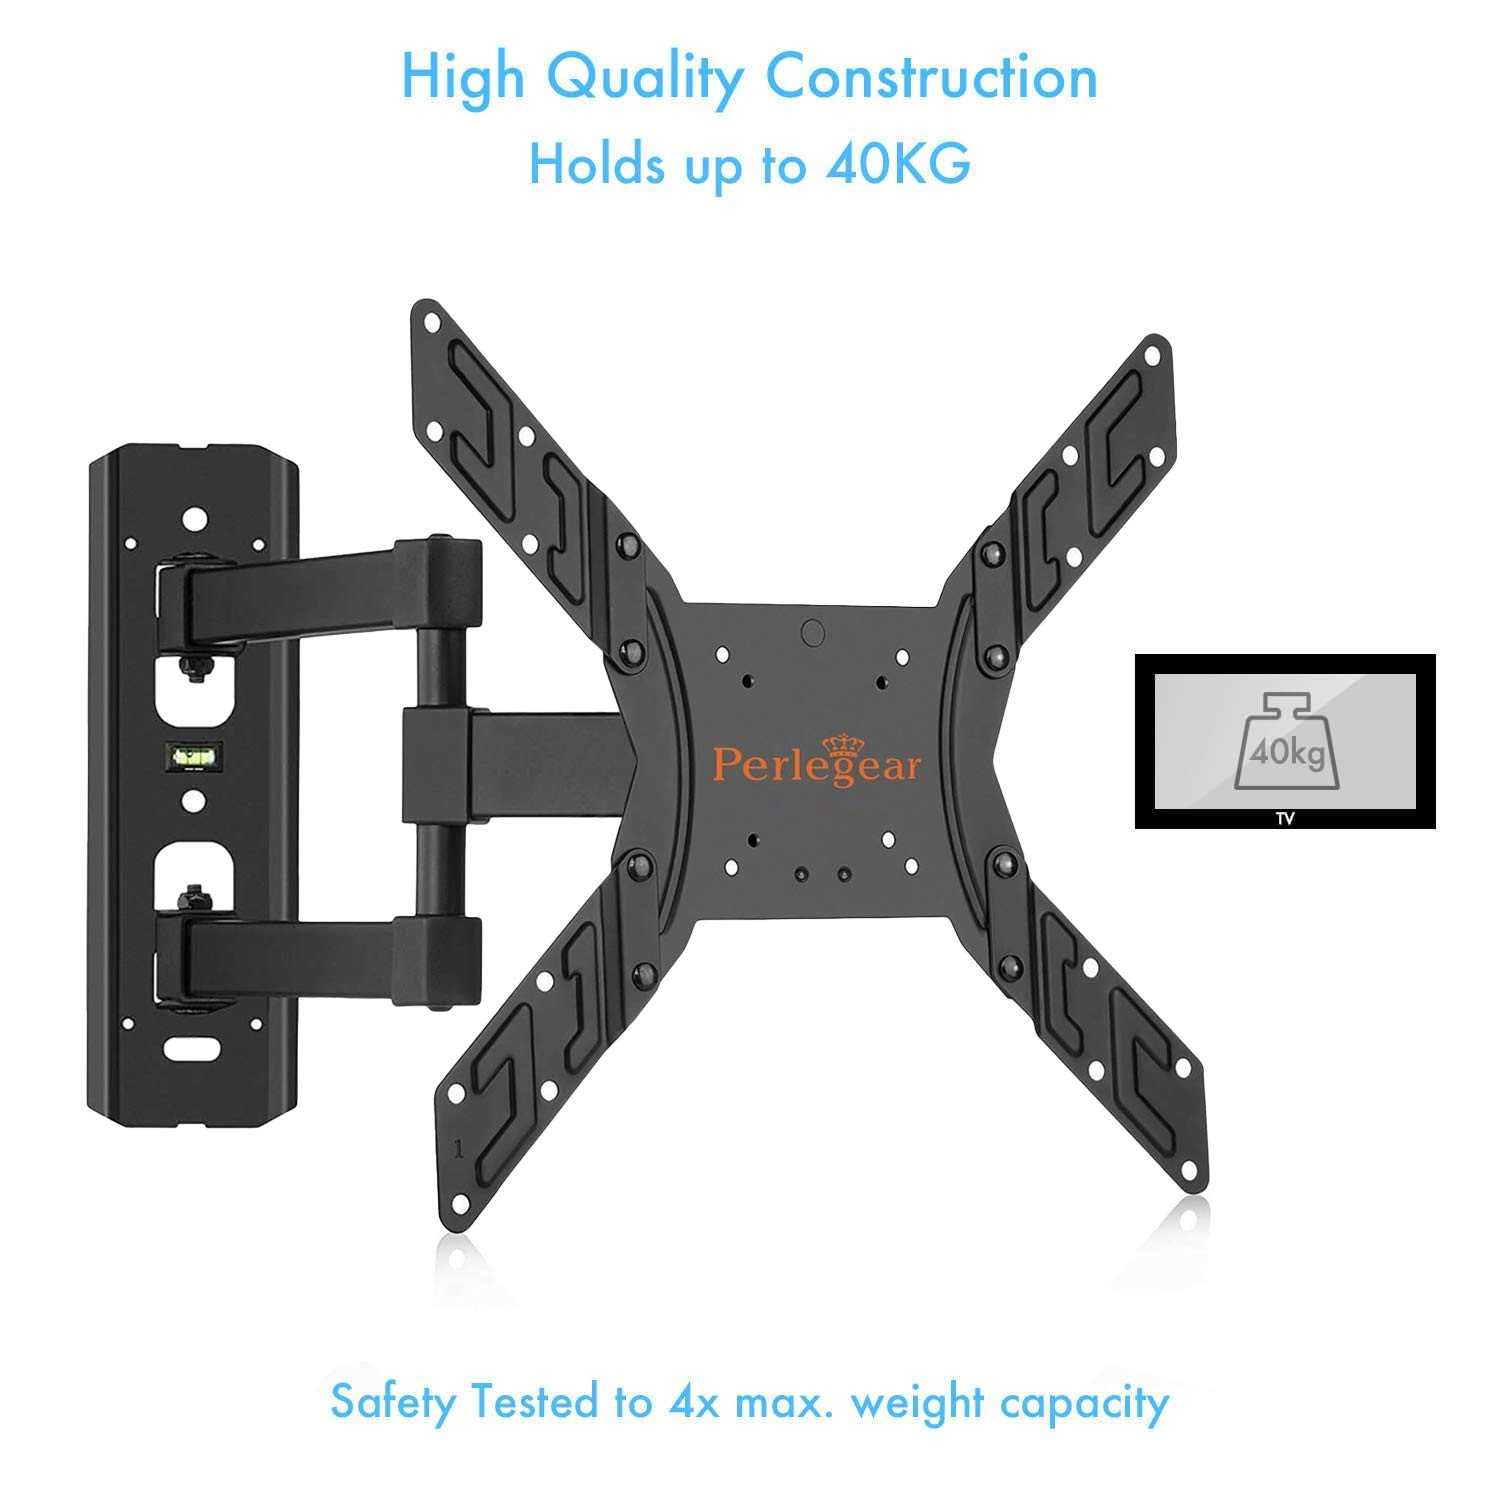 "Perlegear TV Wall Mount Bracket - Extends 16"" & Swivels - TV Mount fits 23""-55"" TVs, Holds up to 66lbs, Slim Appearance - Bonus 10ft HDMI Cable, Concrete Anchors Plus More"